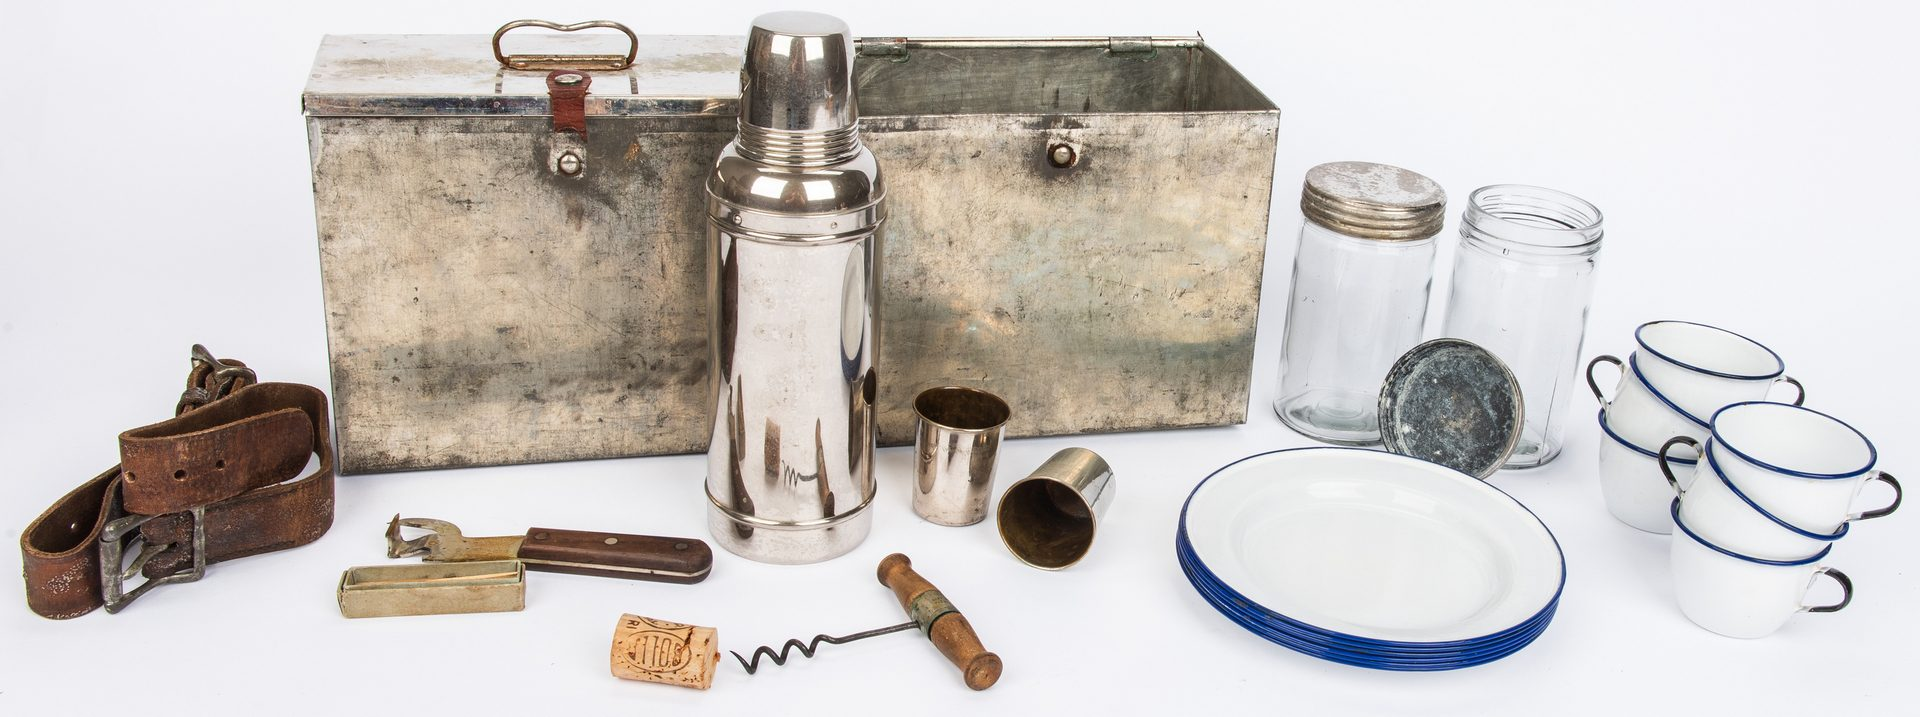 Lot 418: Vintage Automobile Picnic Set